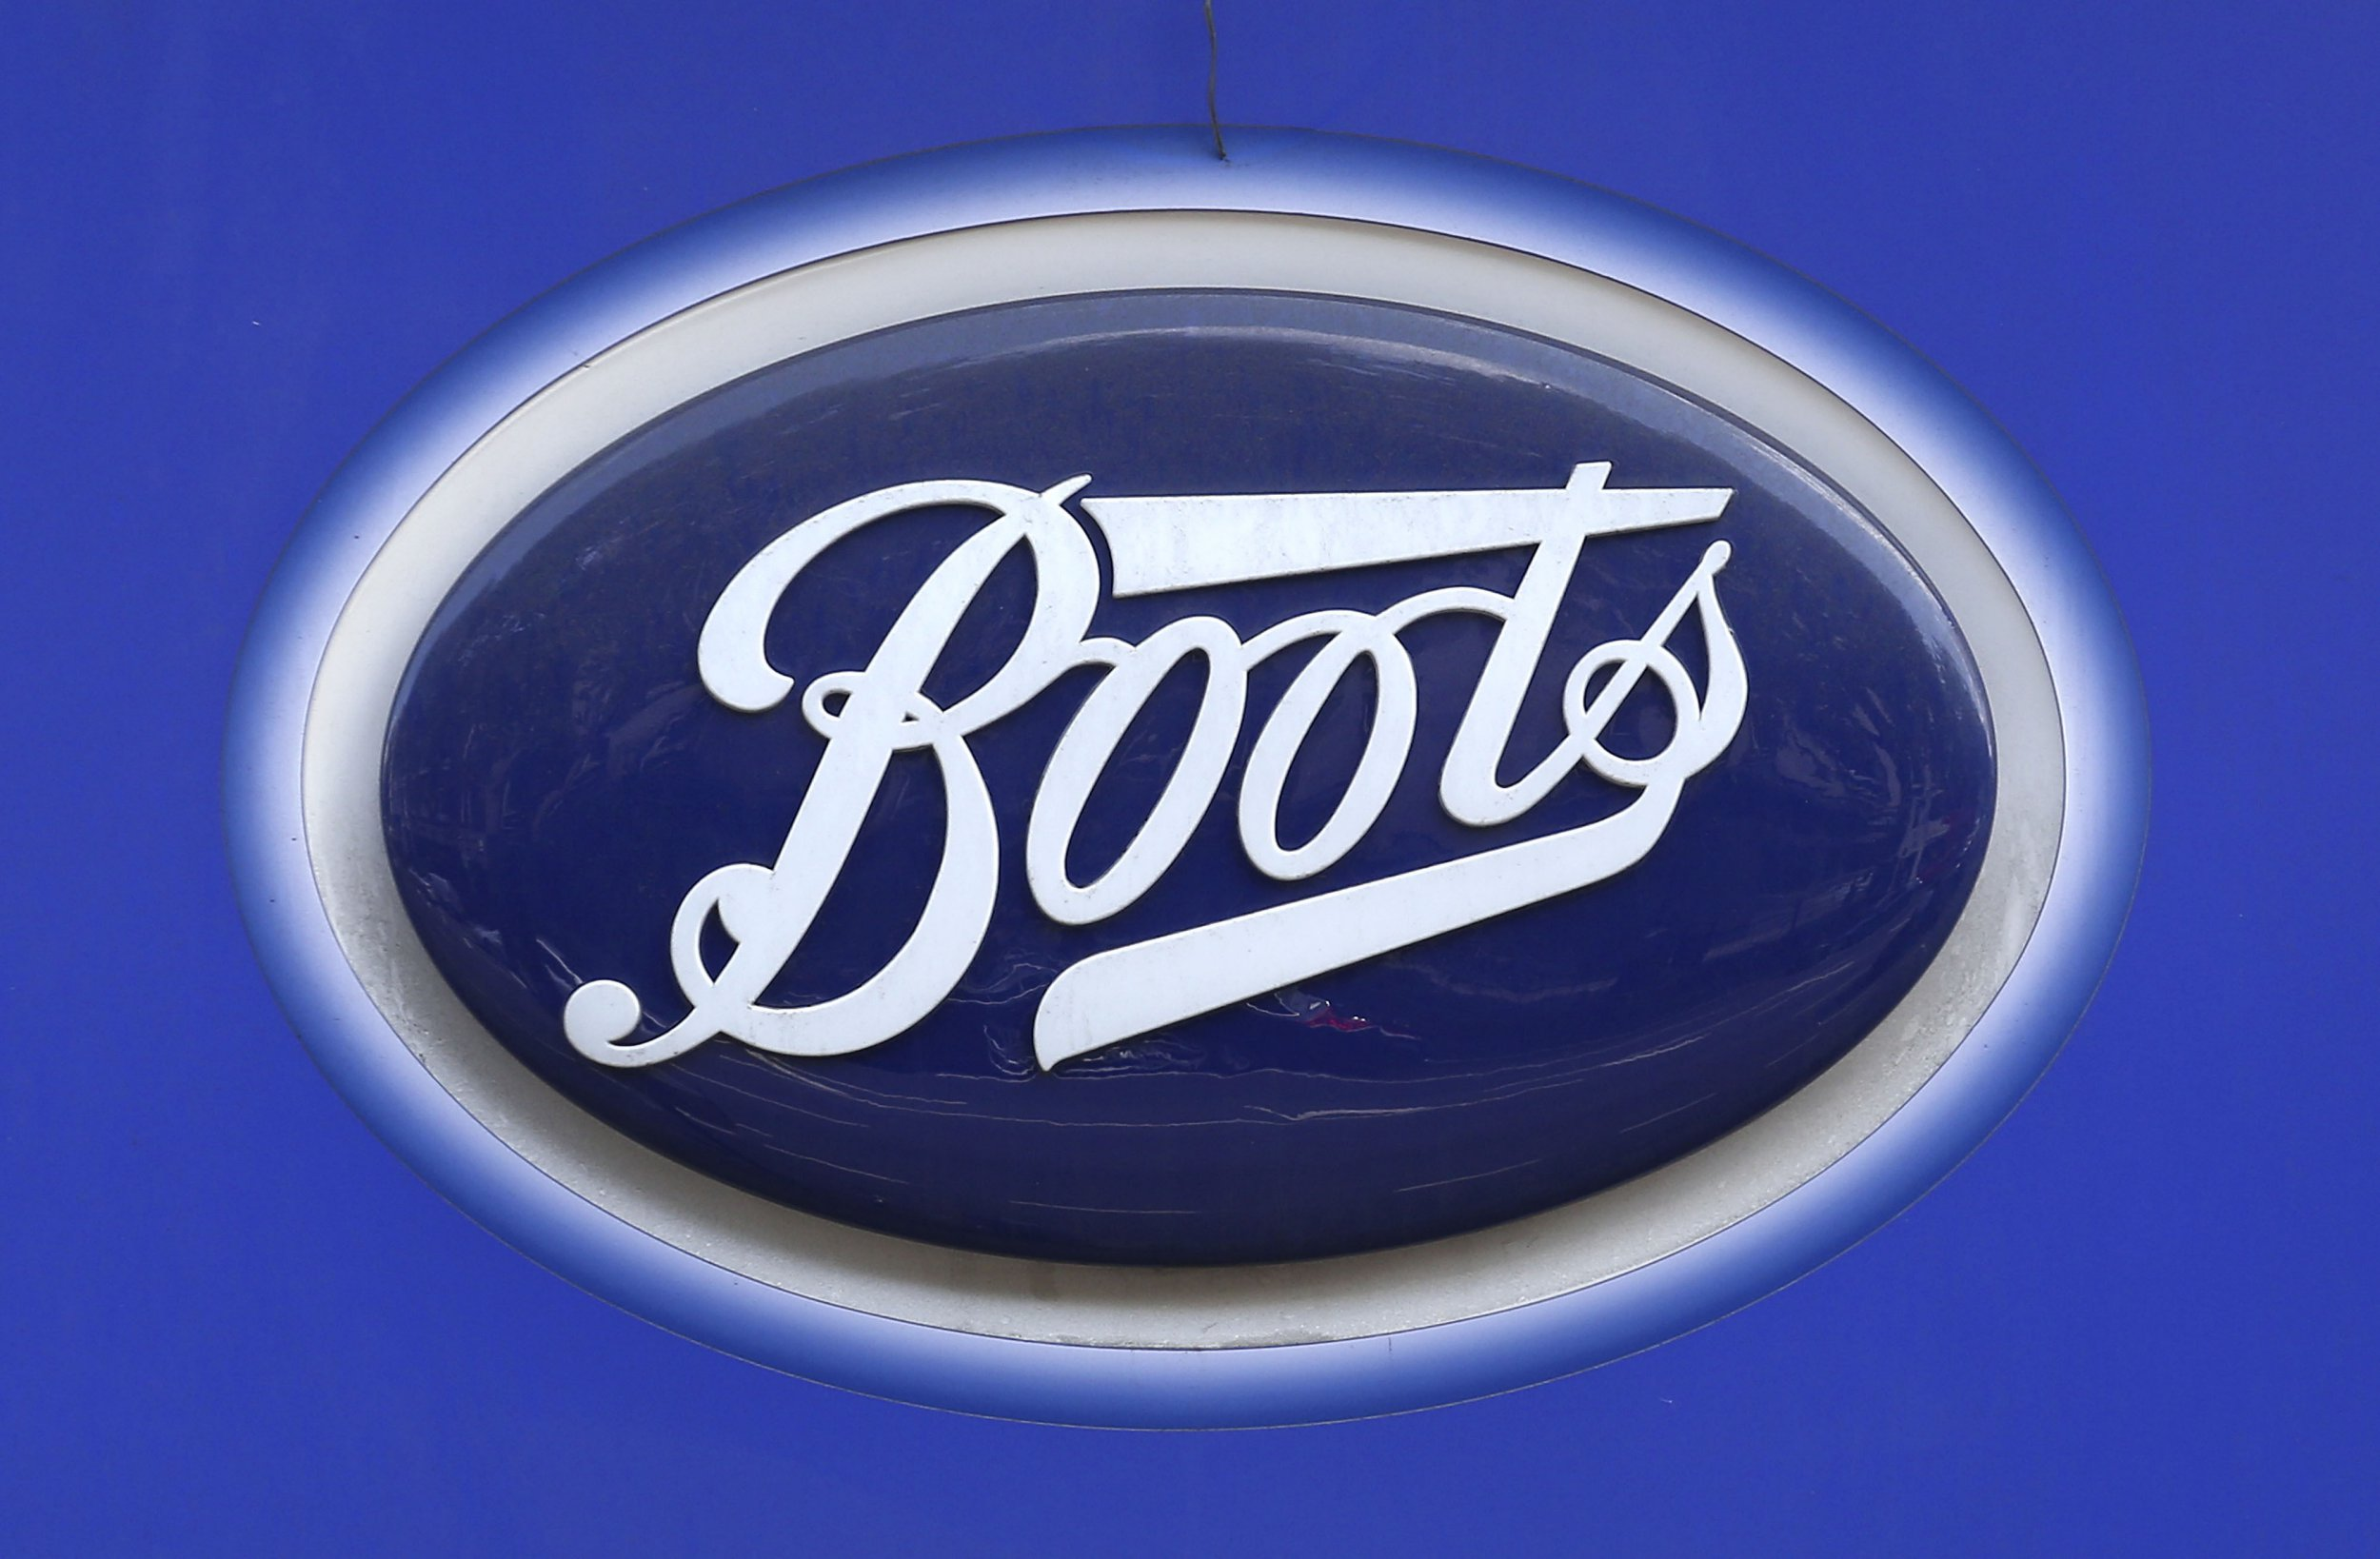 Boots the Chemist shop in Knightsbridge, London, as US retailer Walgreens has confirmed it is to take full control of Boots the Chemist owner Alliance Boots after announcing a £9 billion cash and shares deal to swallow up the 55\% of the company it does not already own.